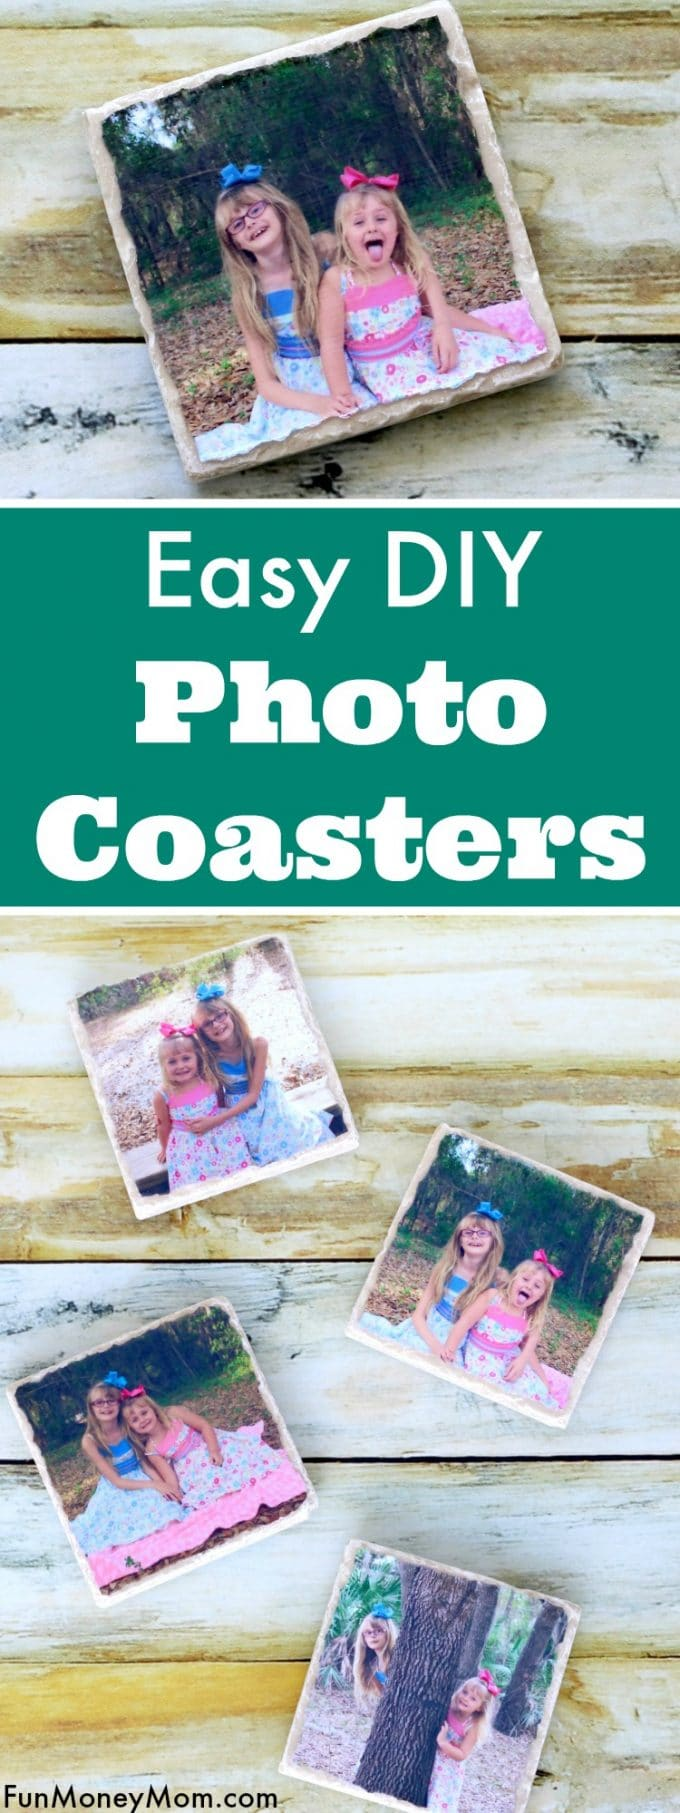 Whether you need drink coasters, a holiday gift or just want some pretty home decor, these easy DIY Tile Photo Coasters are perfect.